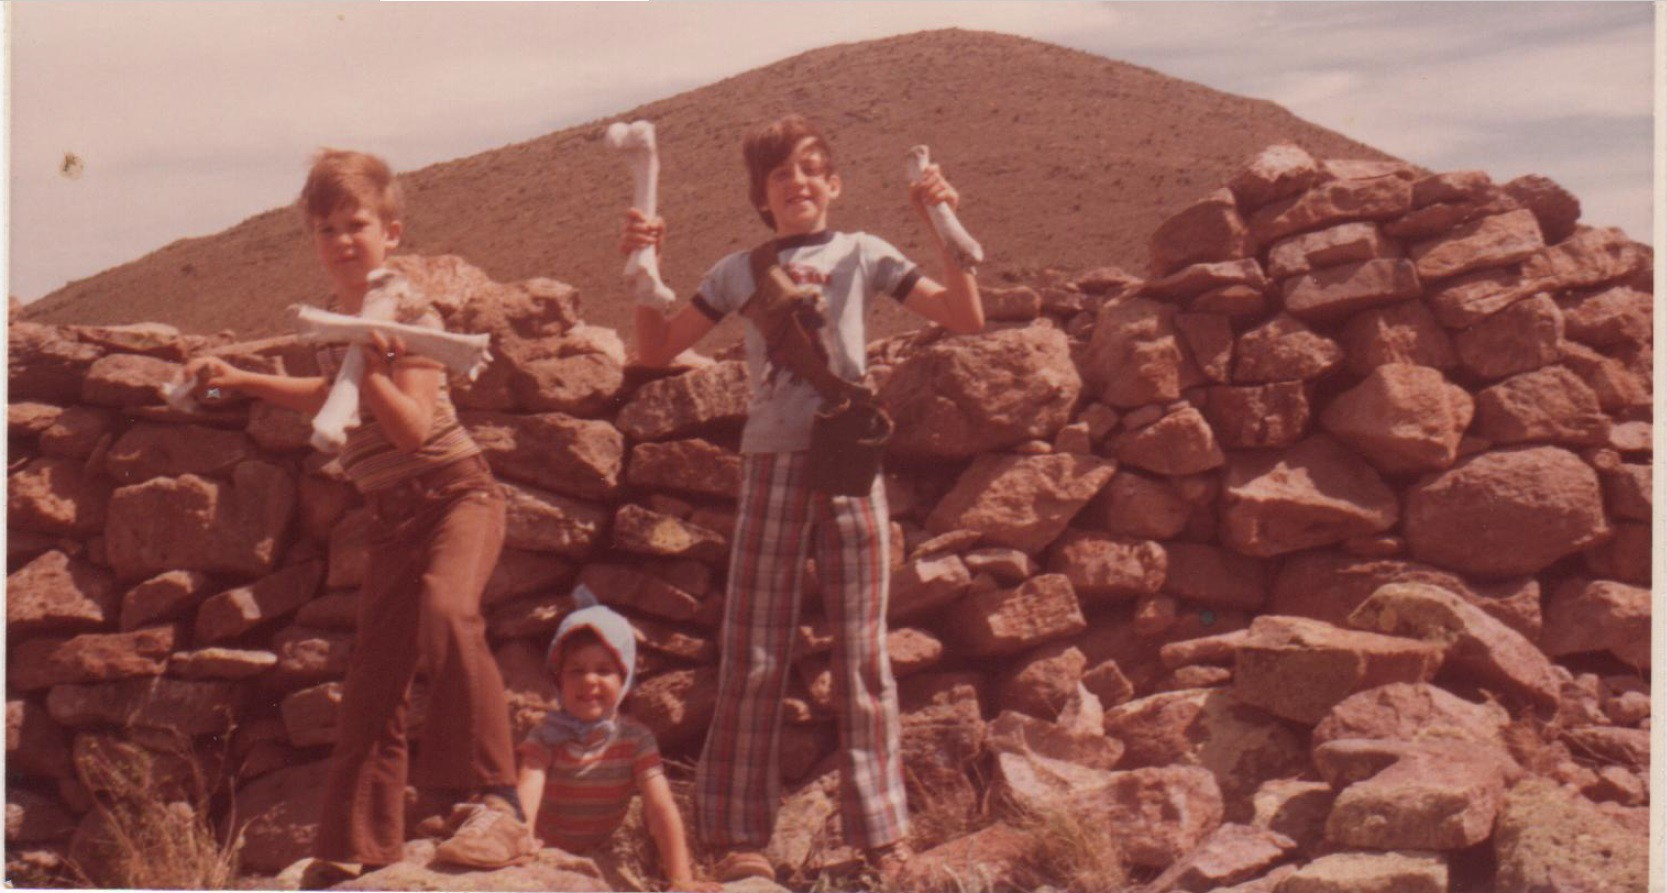 3 children posing near the summit of Pajarito mountain, Chihuahua.